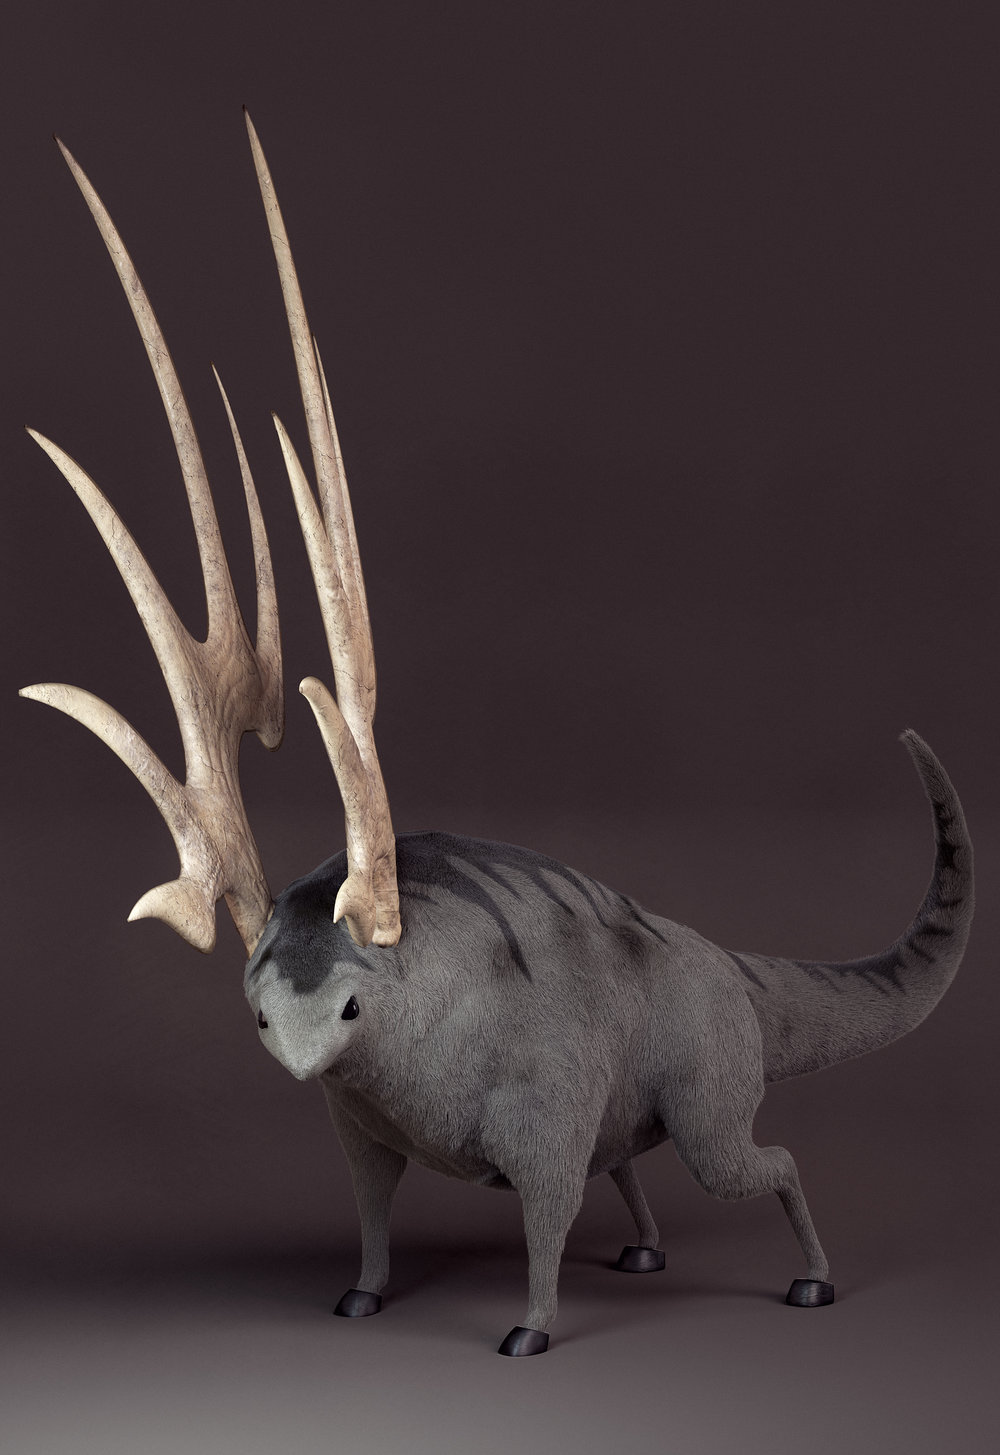 Antler_Shot_002_c_Final.jpg